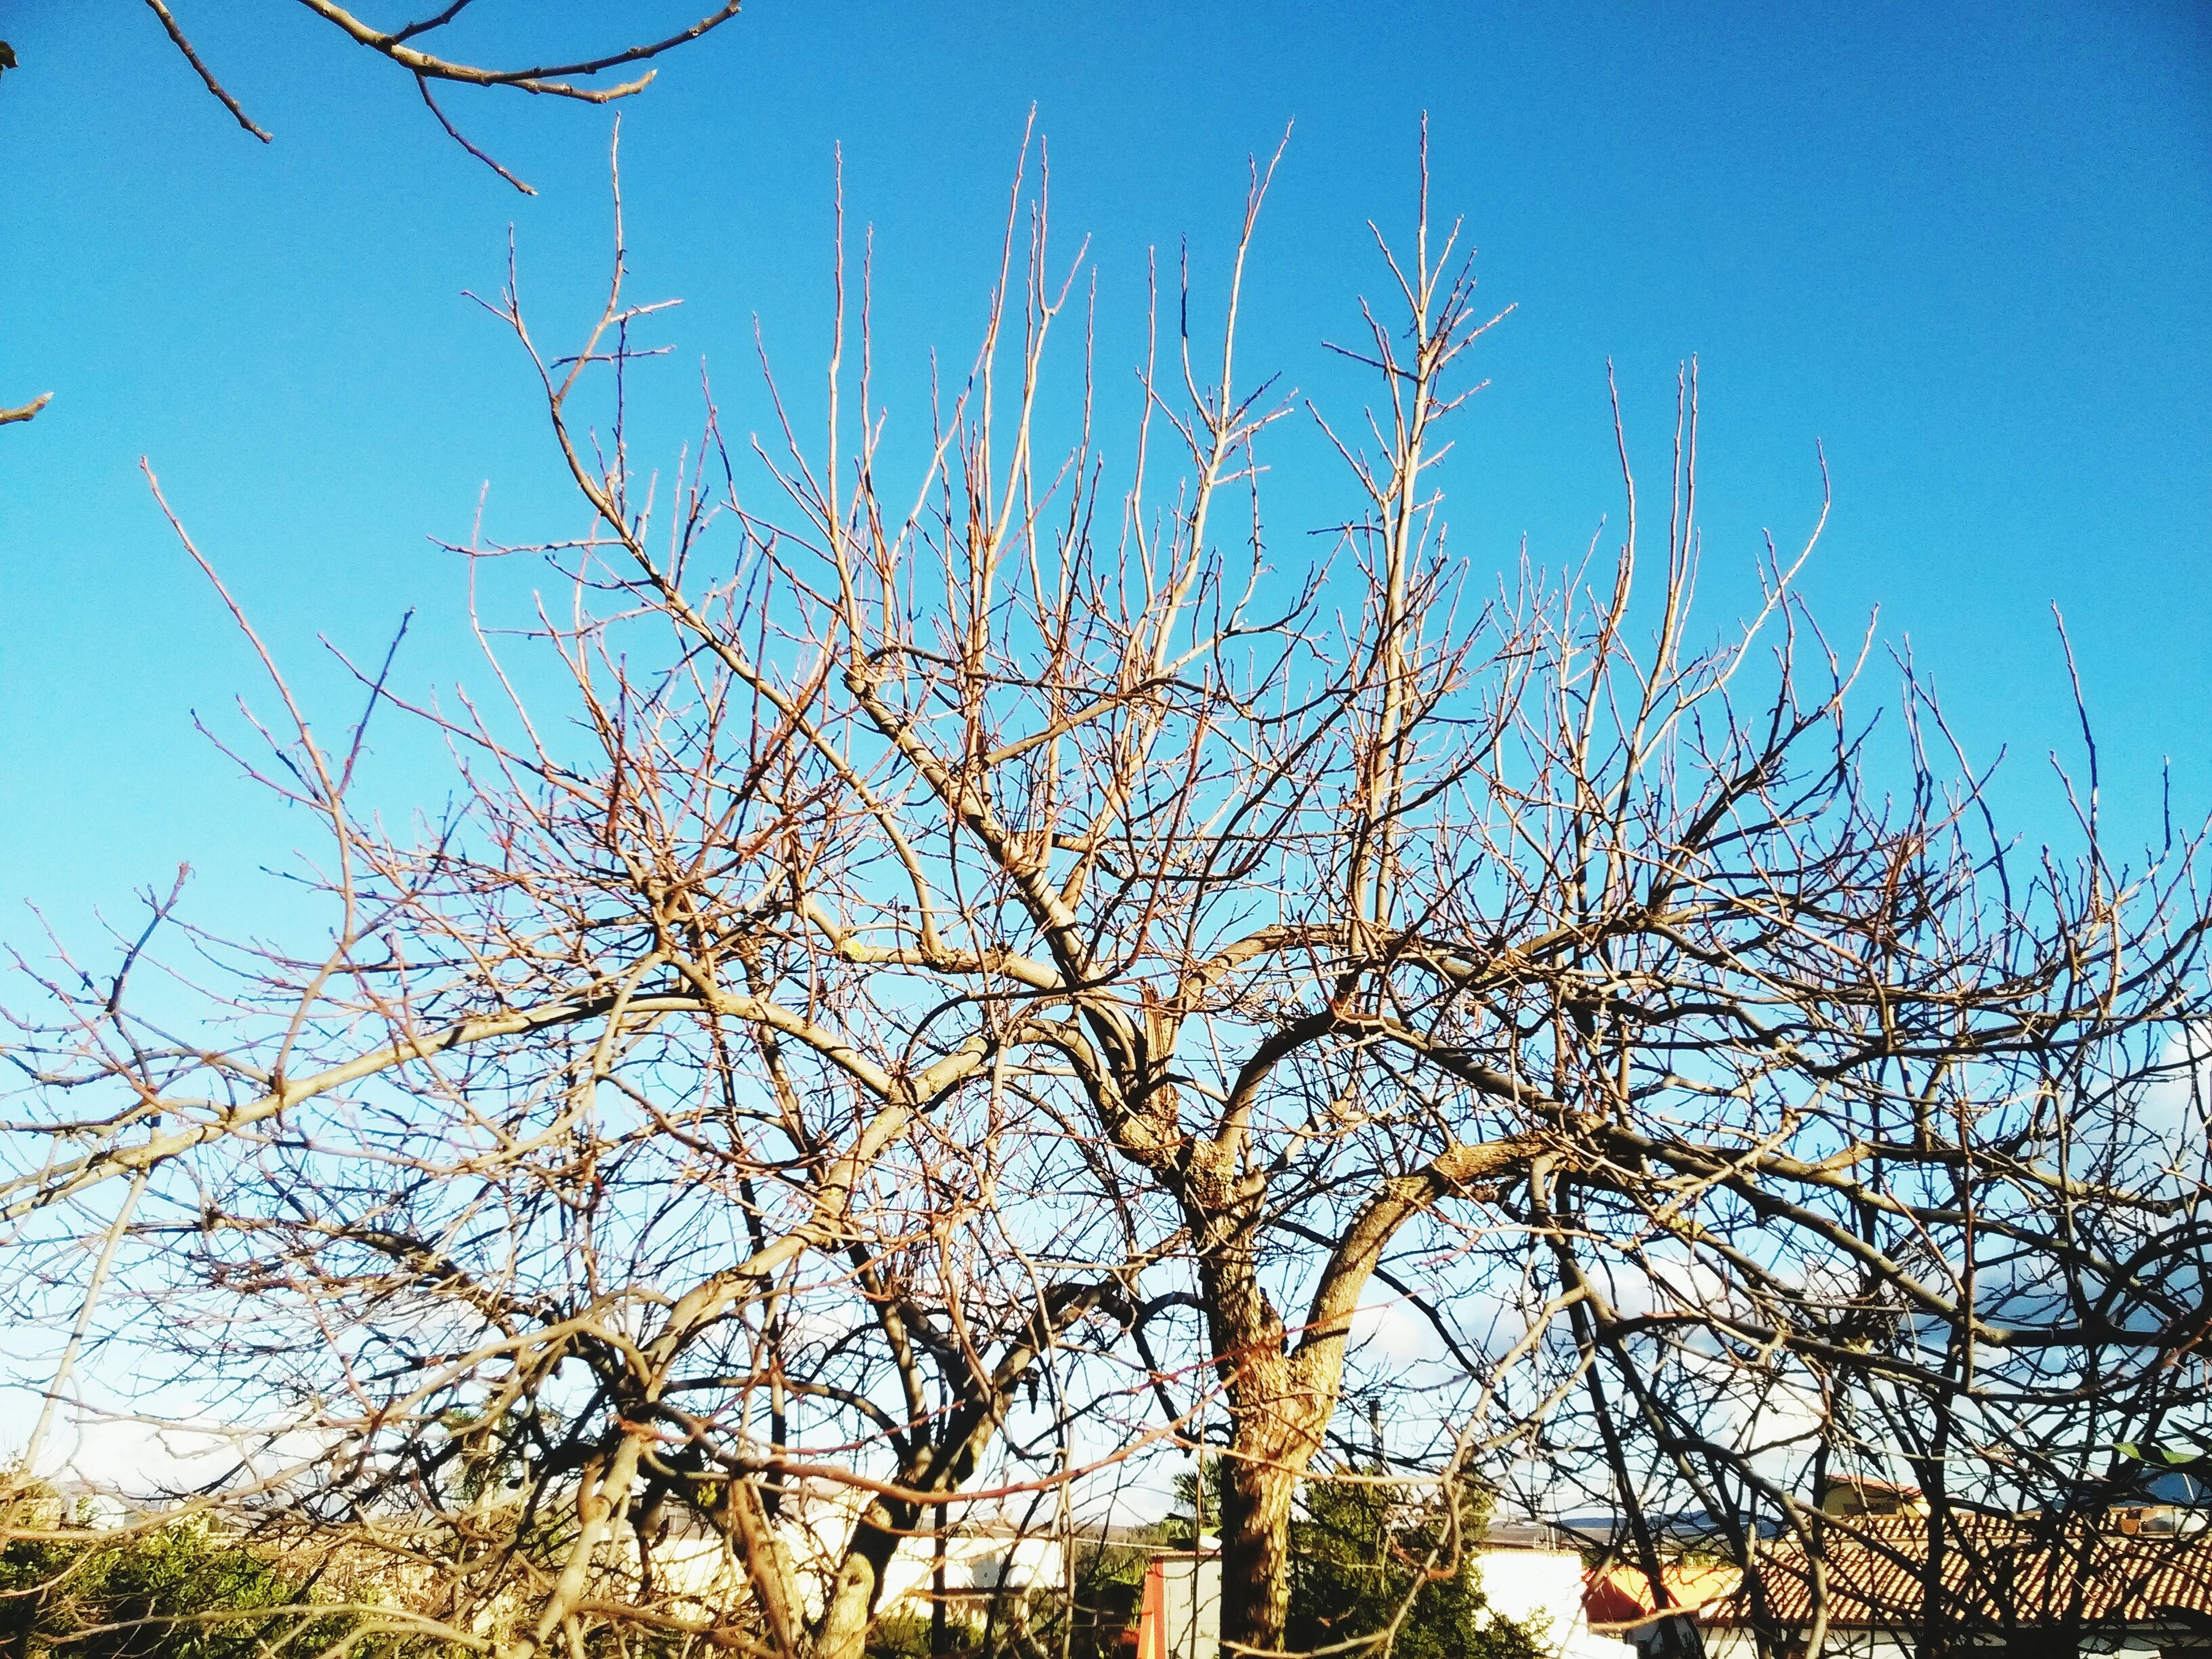 blue, low angle view, clear sky, branch, tree, bare tree, built structure, building exterior, growth, architecture, nature, sky, day, outdoors, sunlight, no people, high section, tranquility, beauty in nature, plant